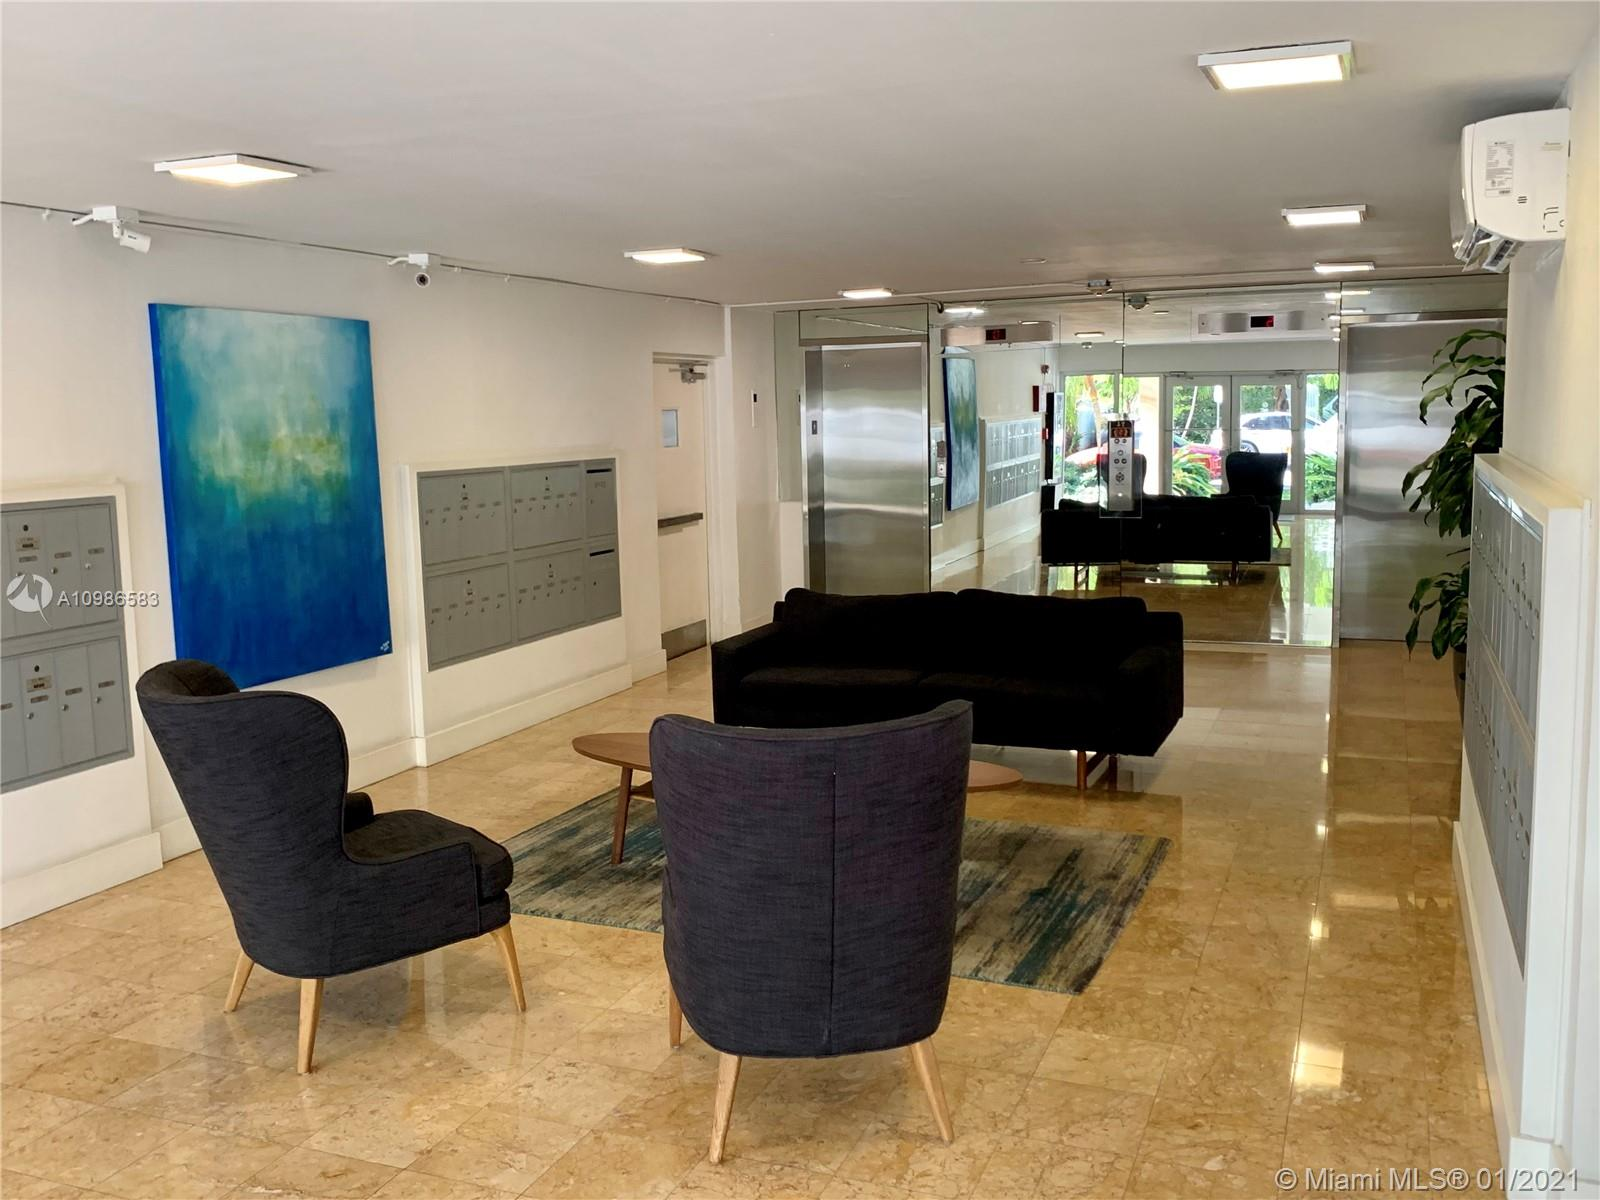 1750 James Ave # 5A, Miami Beach, Florida 33139, 1 Bedroom Bedrooms, ,2 BathroomsBathrooms,Residential,For Sale,1750 James Ave # 5A,A10986583